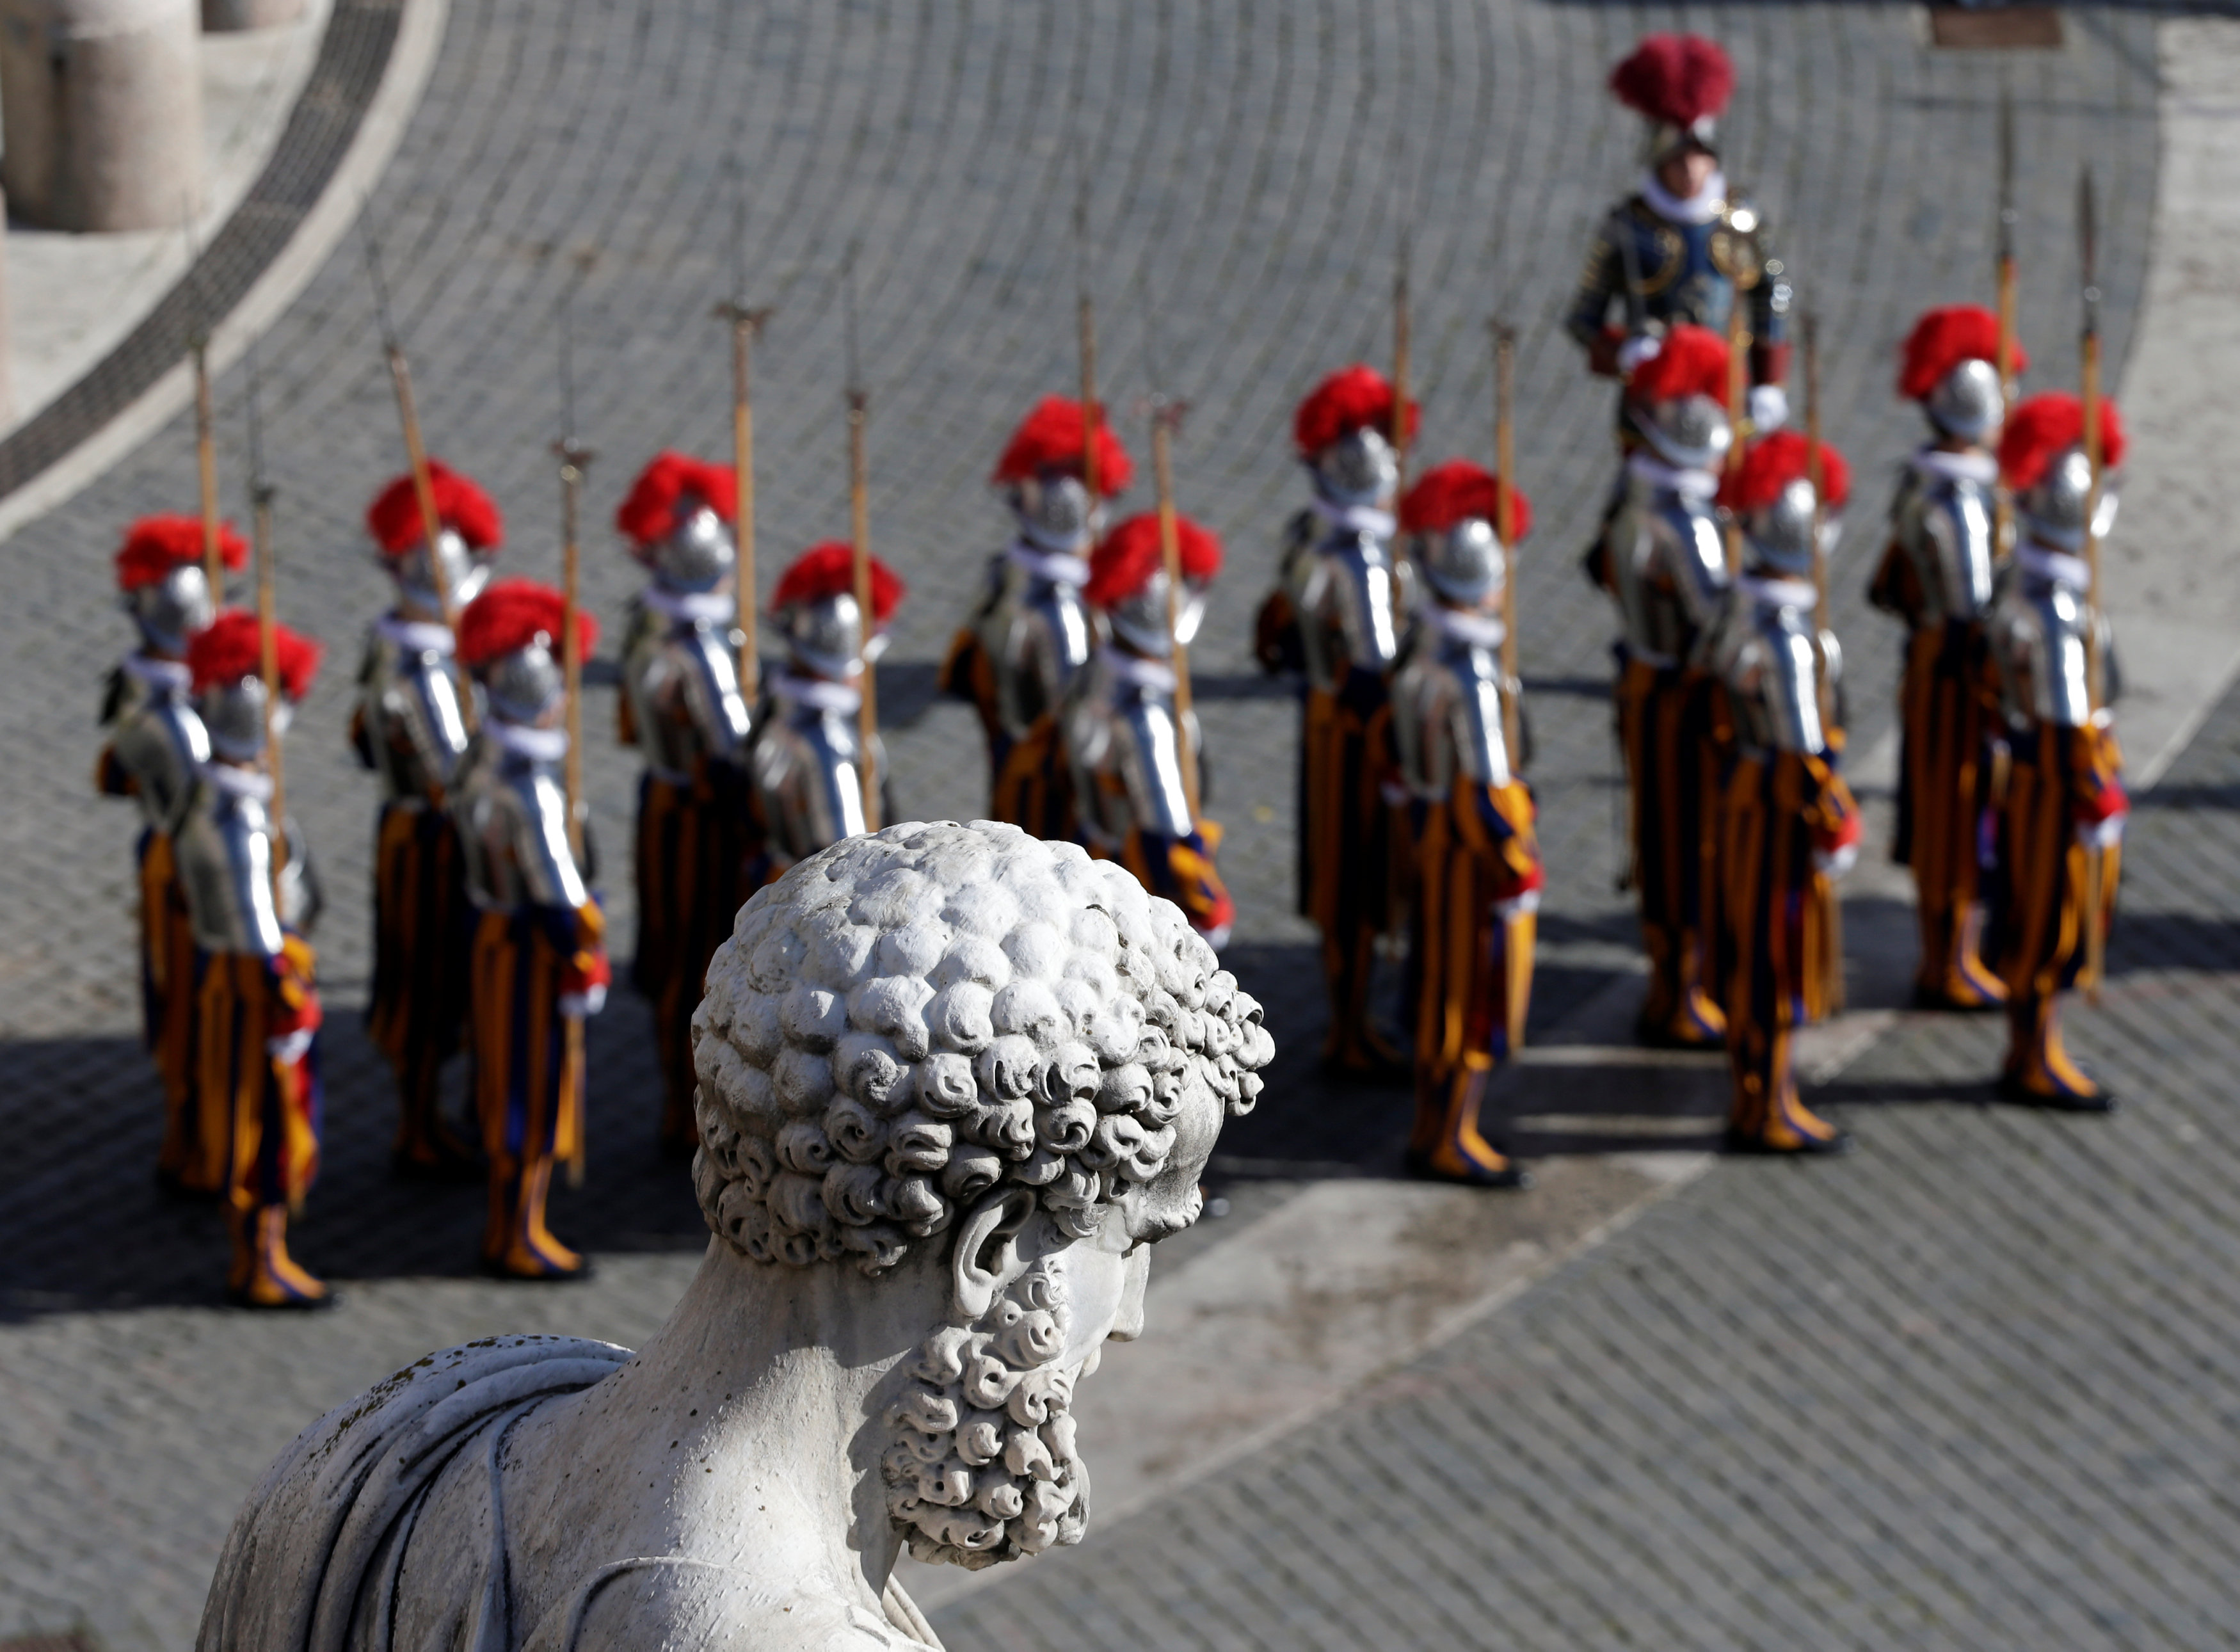 Swiss Guards stand in front of the St. Peter's Basilica before the Easter Mass at St. Peter's Square at the Vatican April 1, 2018. REUTERS/Max Rossi